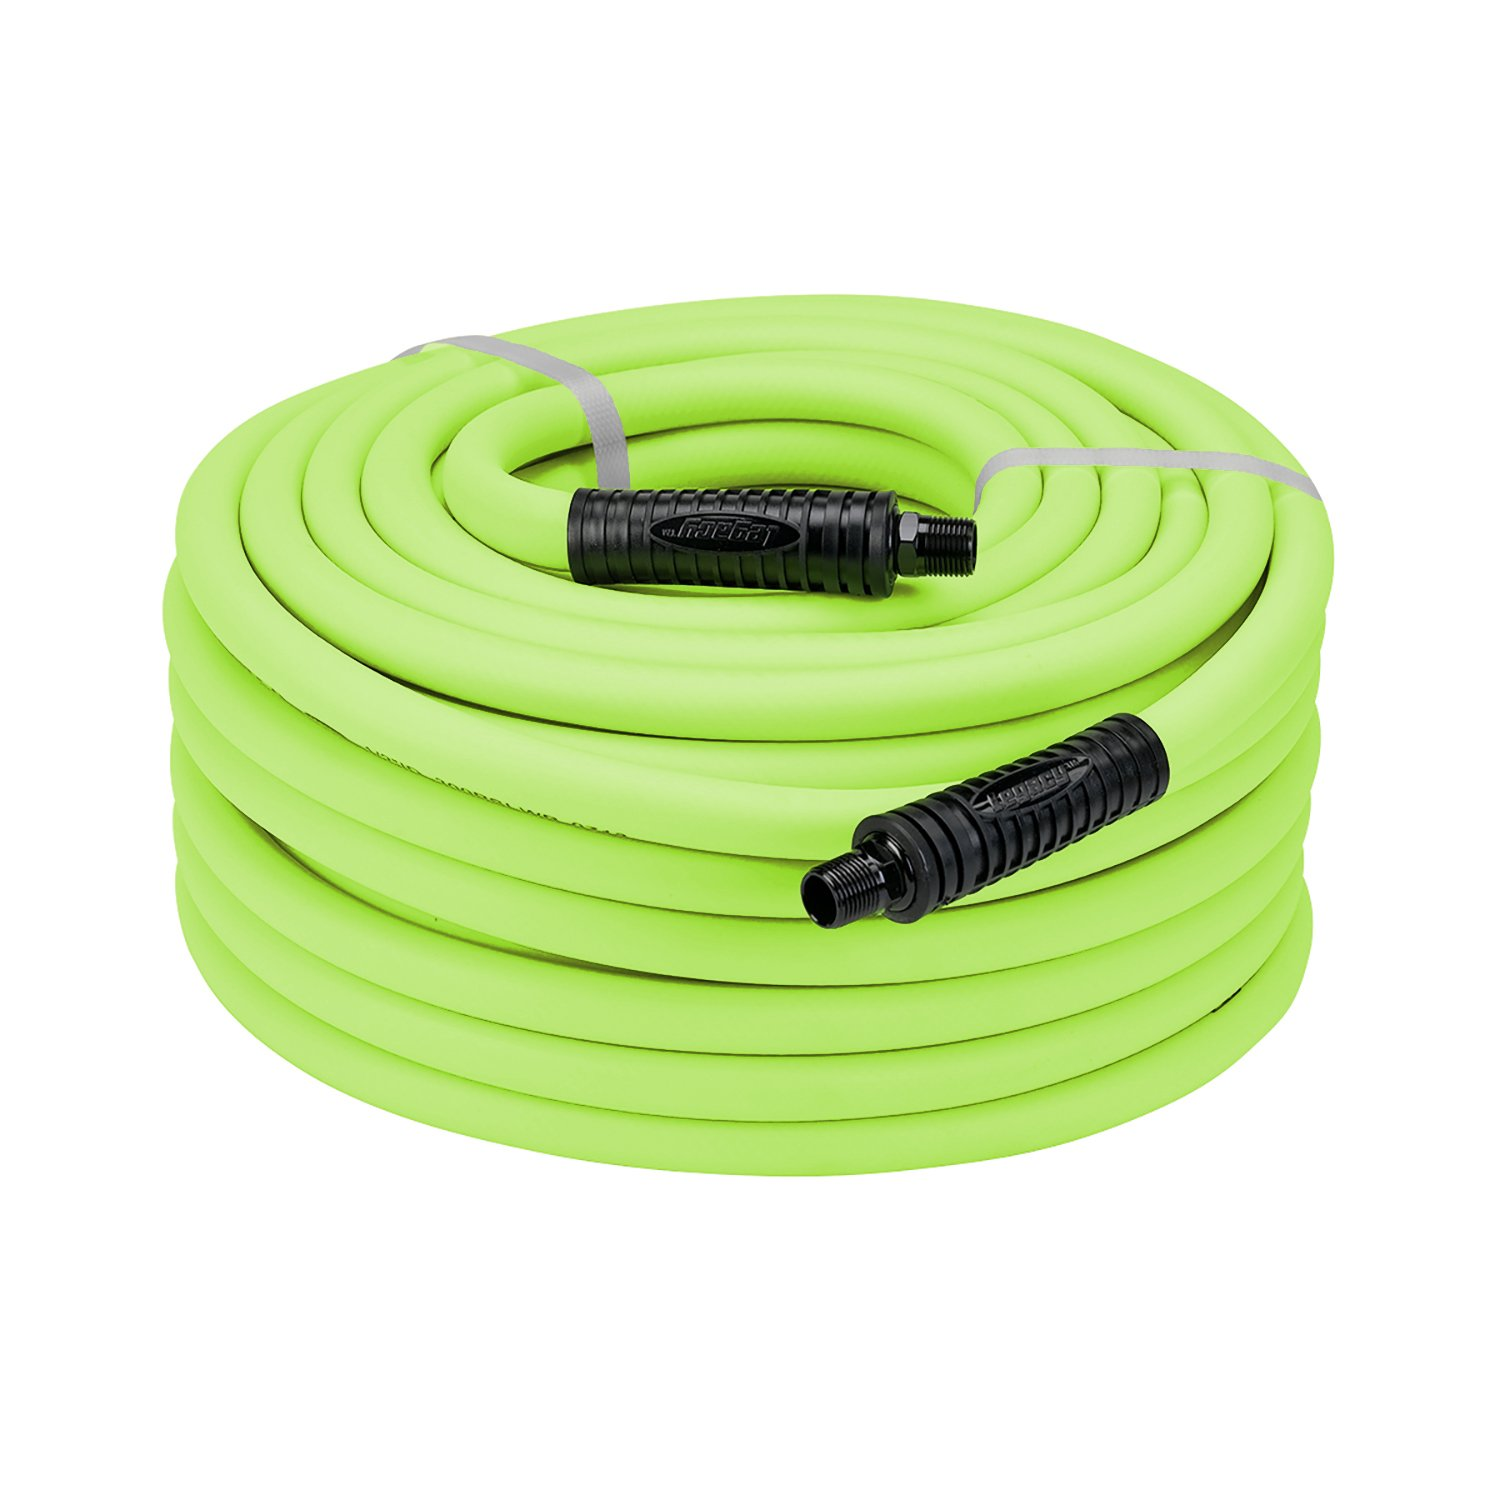 Flexzilla Air Hose, 1/2 In. X 50 Ft., 3/8 In. MNPT Fittings Heavy Duty,  Lightweight, Hybrid, ZillaGreen   HFZ1250YW3   Air Tool Hose Reels    Amazon.com